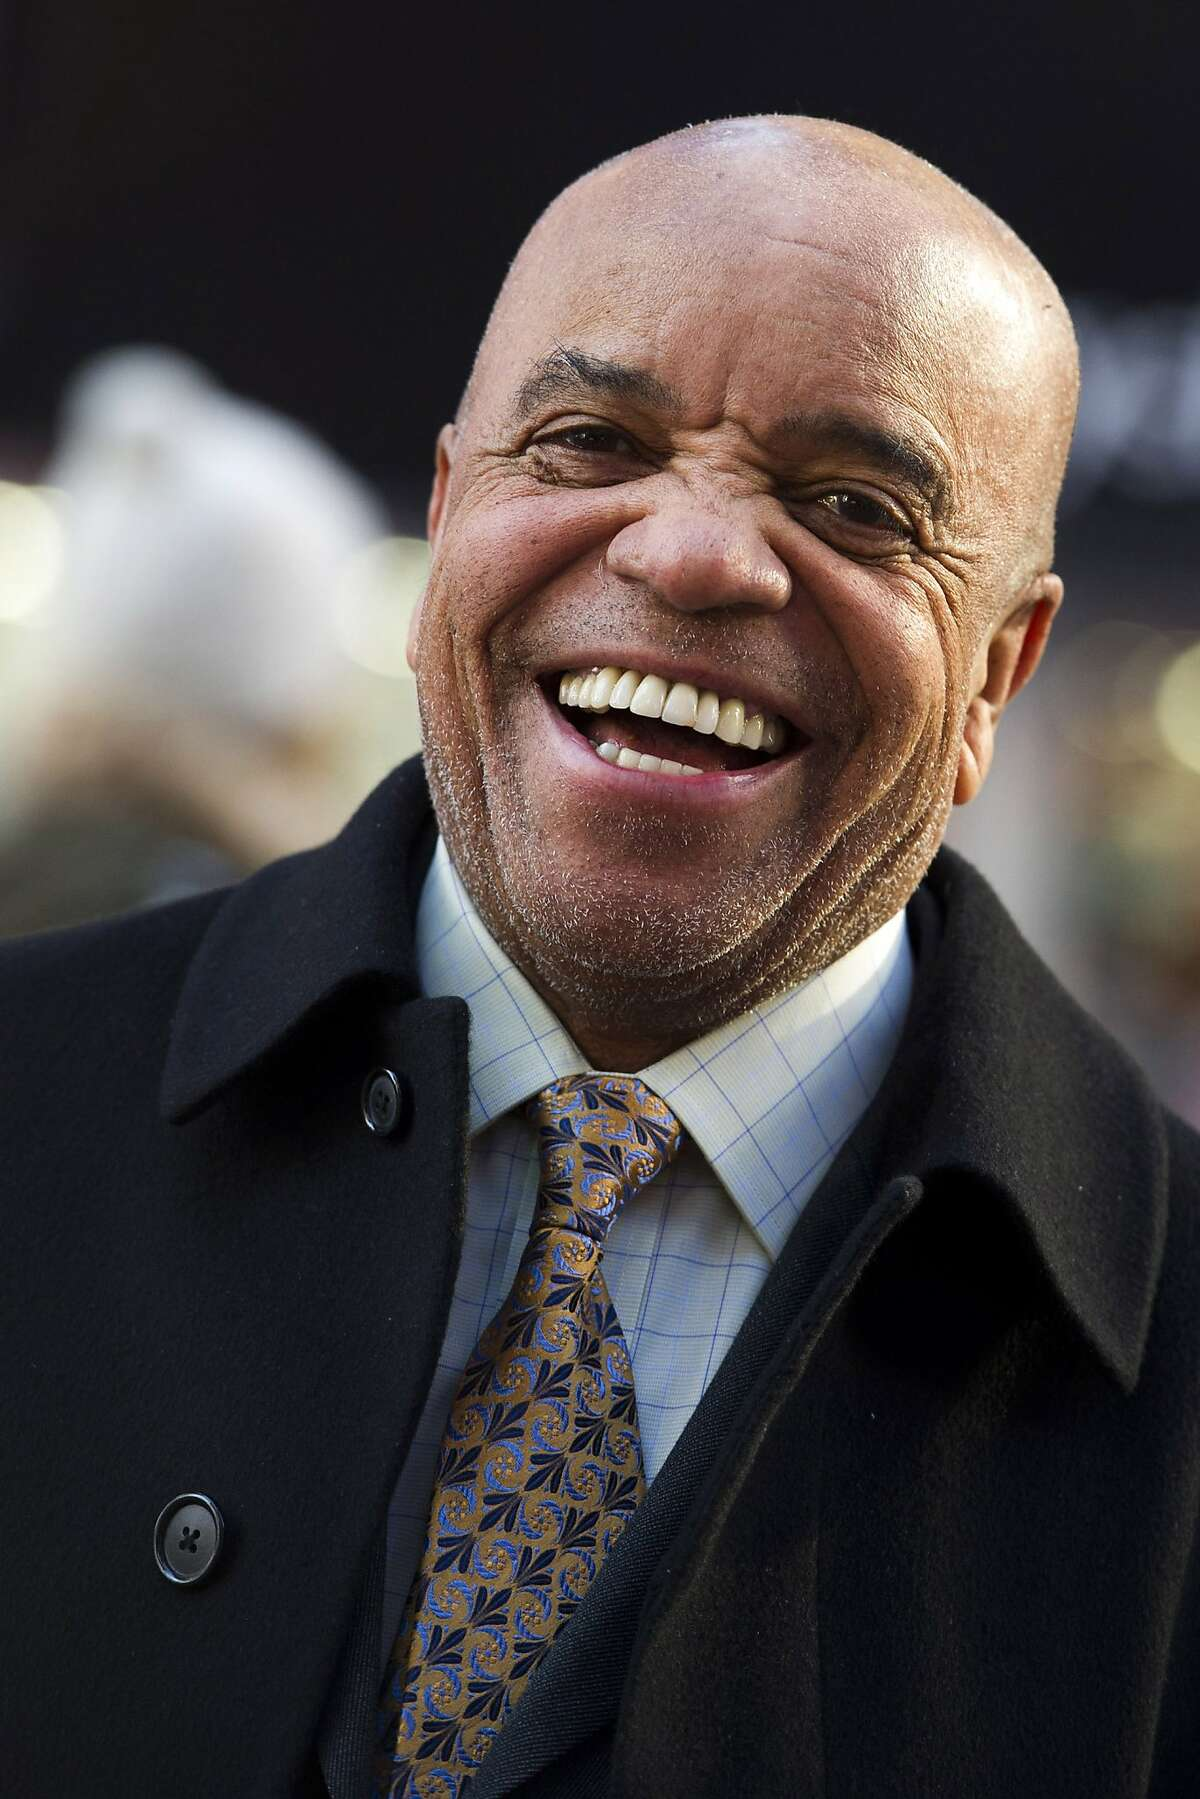 This March 5, 2013 photo shows Berry Gordy posing for a portrait in New York. For Berry Gordy, conquering Broadway is the next - and by his own admission, last - major milestone of a magical, musical career. The 83-year-old Motown Records founder is taking his story and that of his legendary label to the Great White Way.